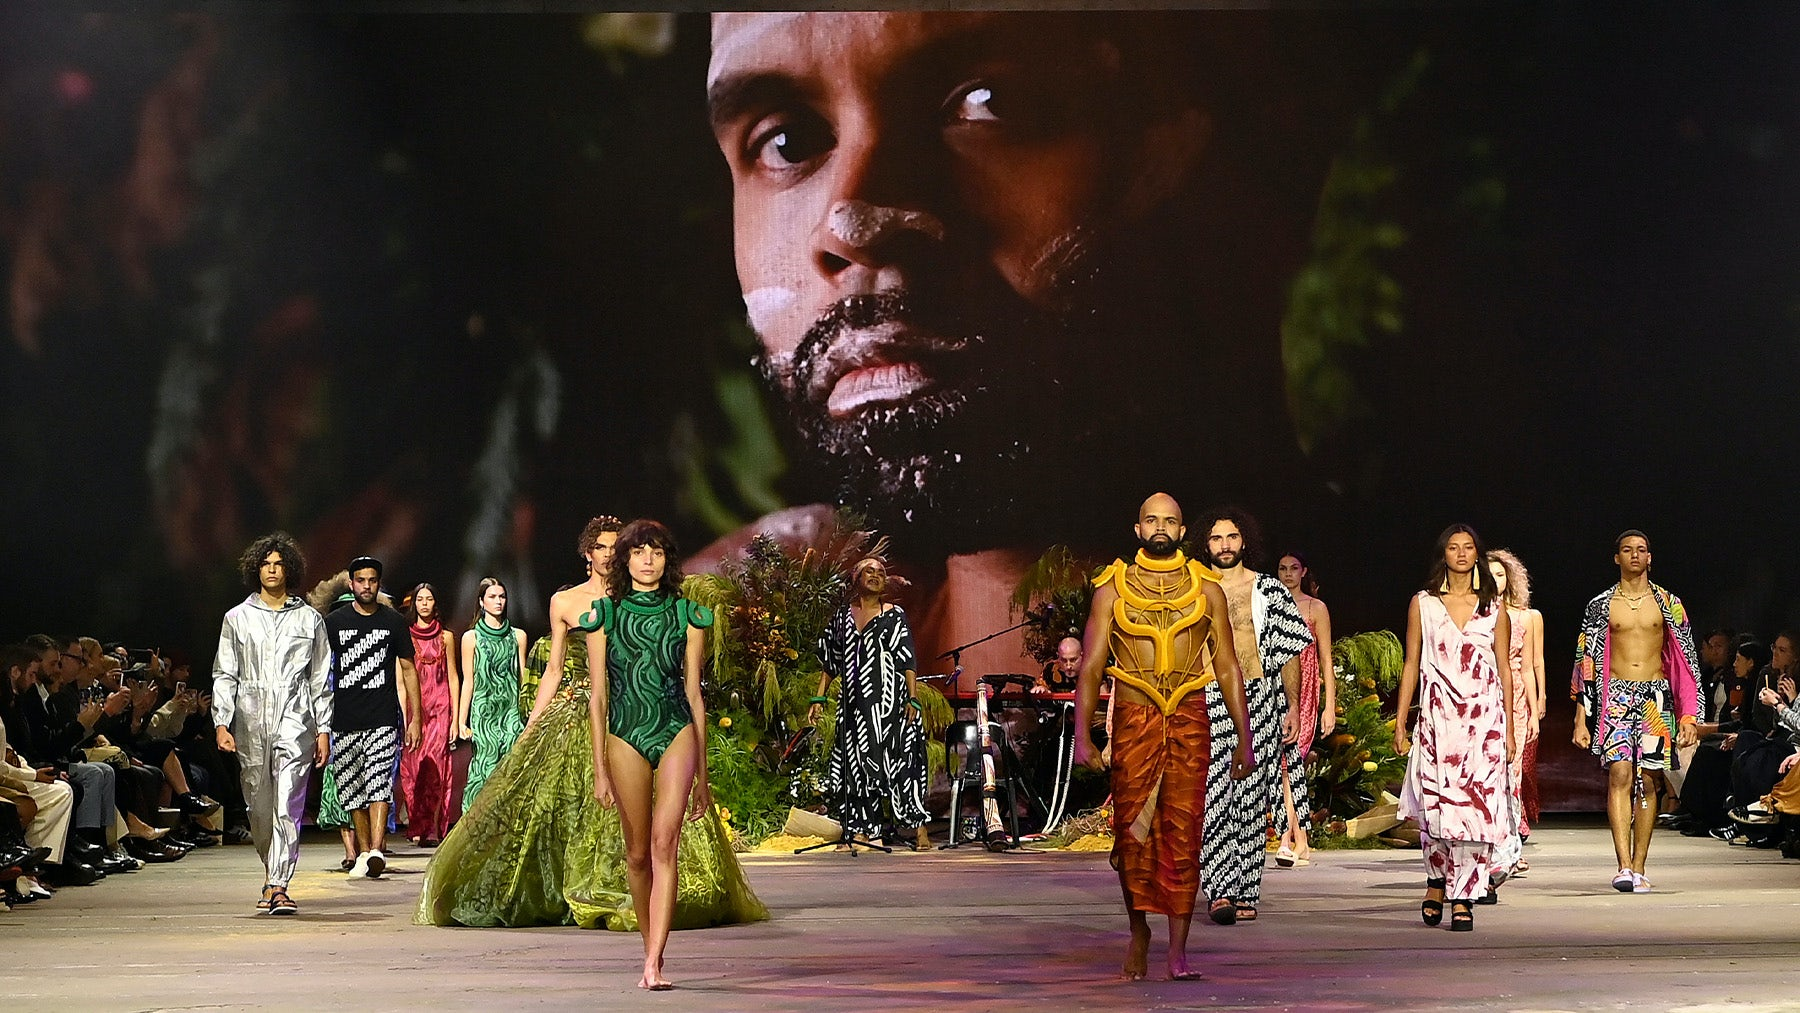 Models on the runway at the First Nations Fashion and Design show at Australian Fashion Week in Sydney on June 2. Getty Images.